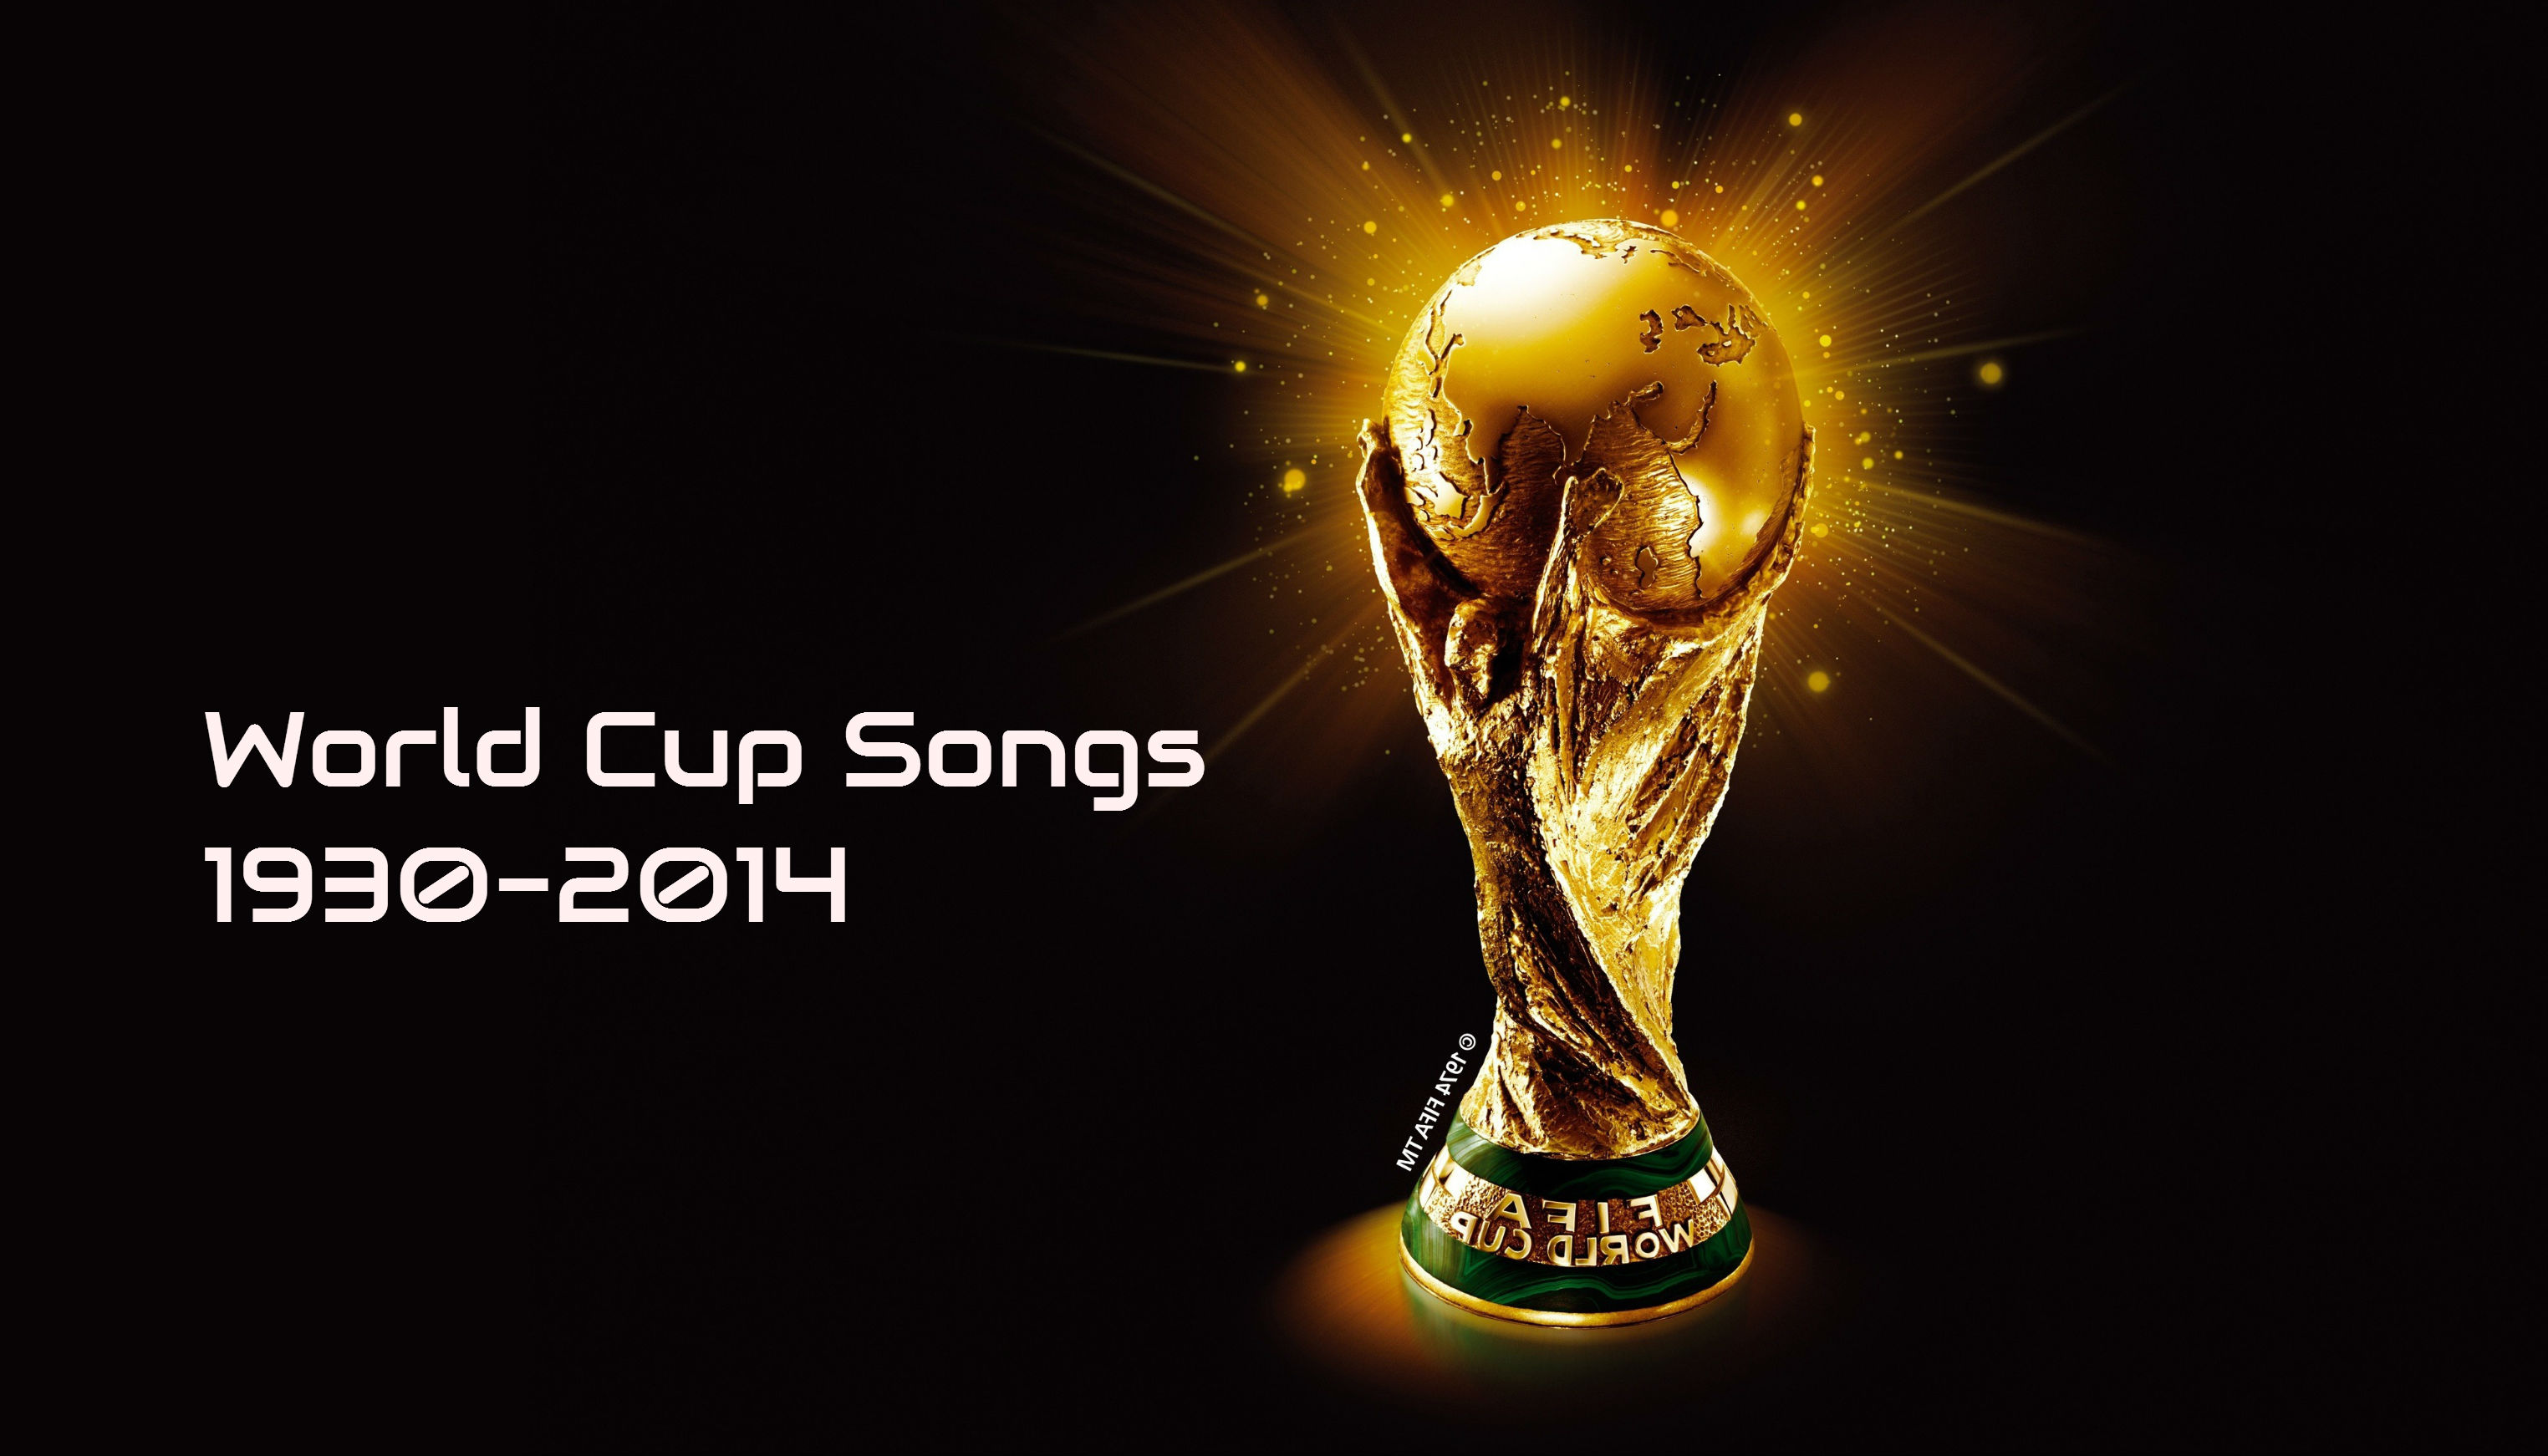 World Cup Songs 1930-2014